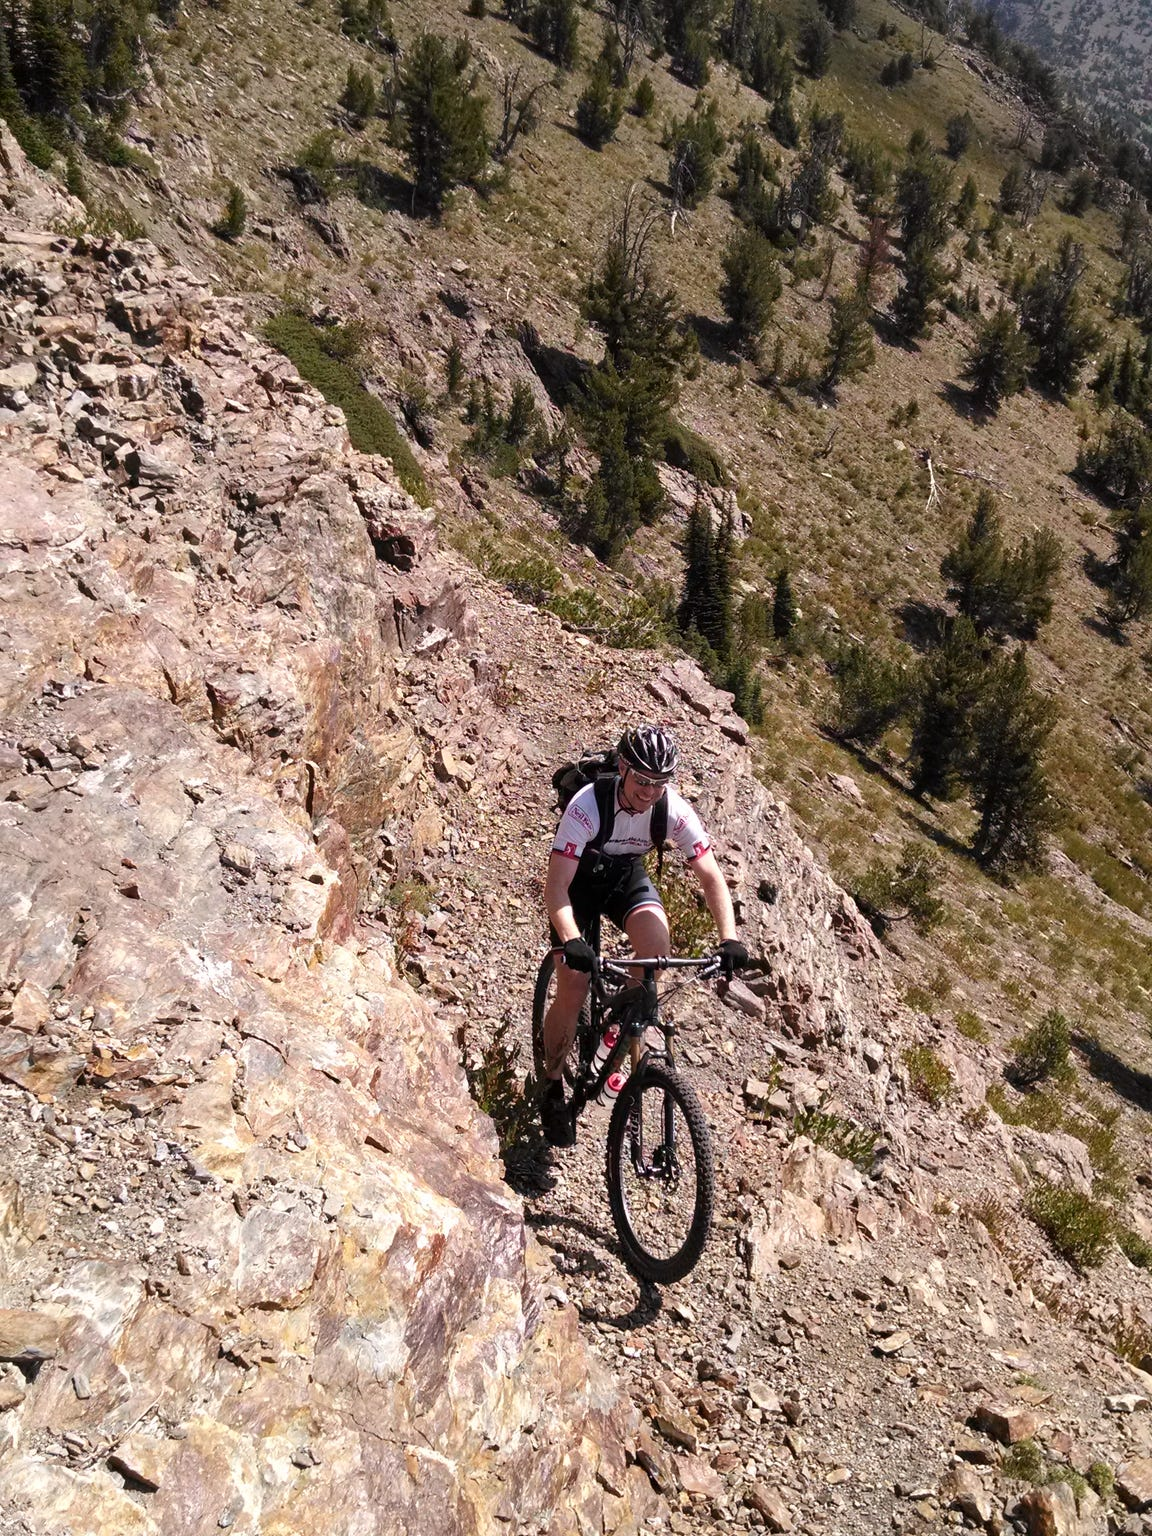 Mountain biking on the Elkhorn Crest Trail is becoming